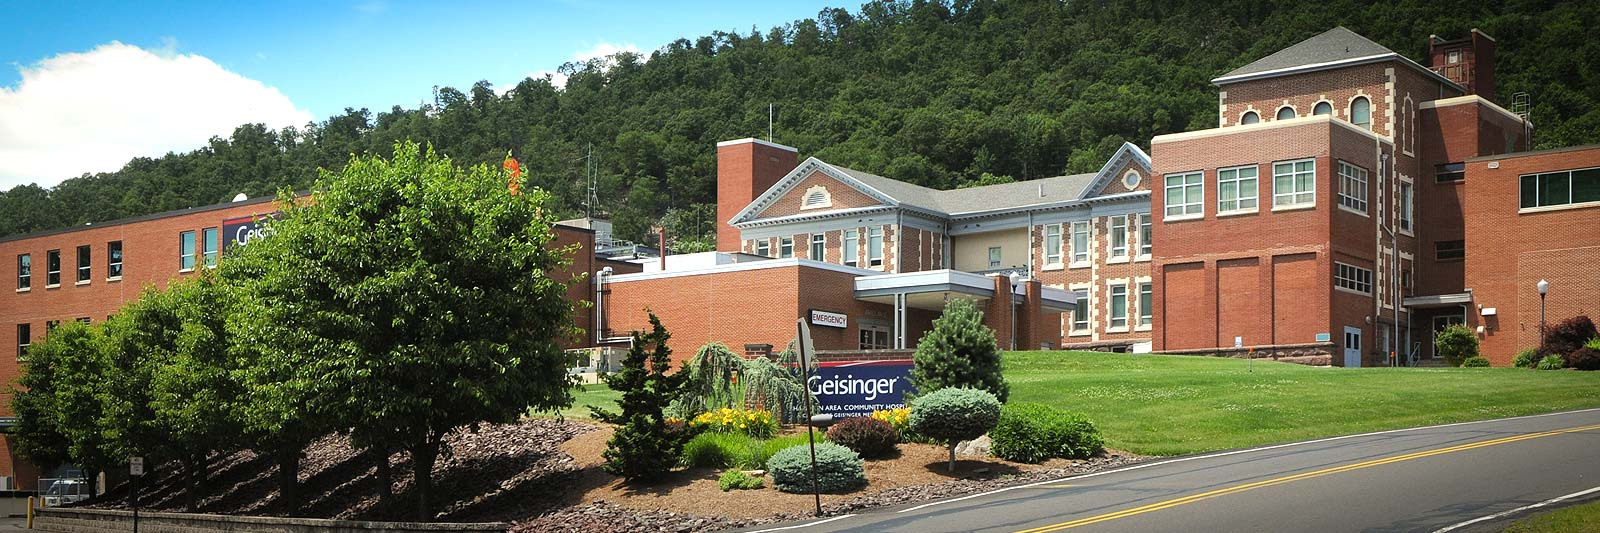 Geisinger Shamokin Area Community Hospital